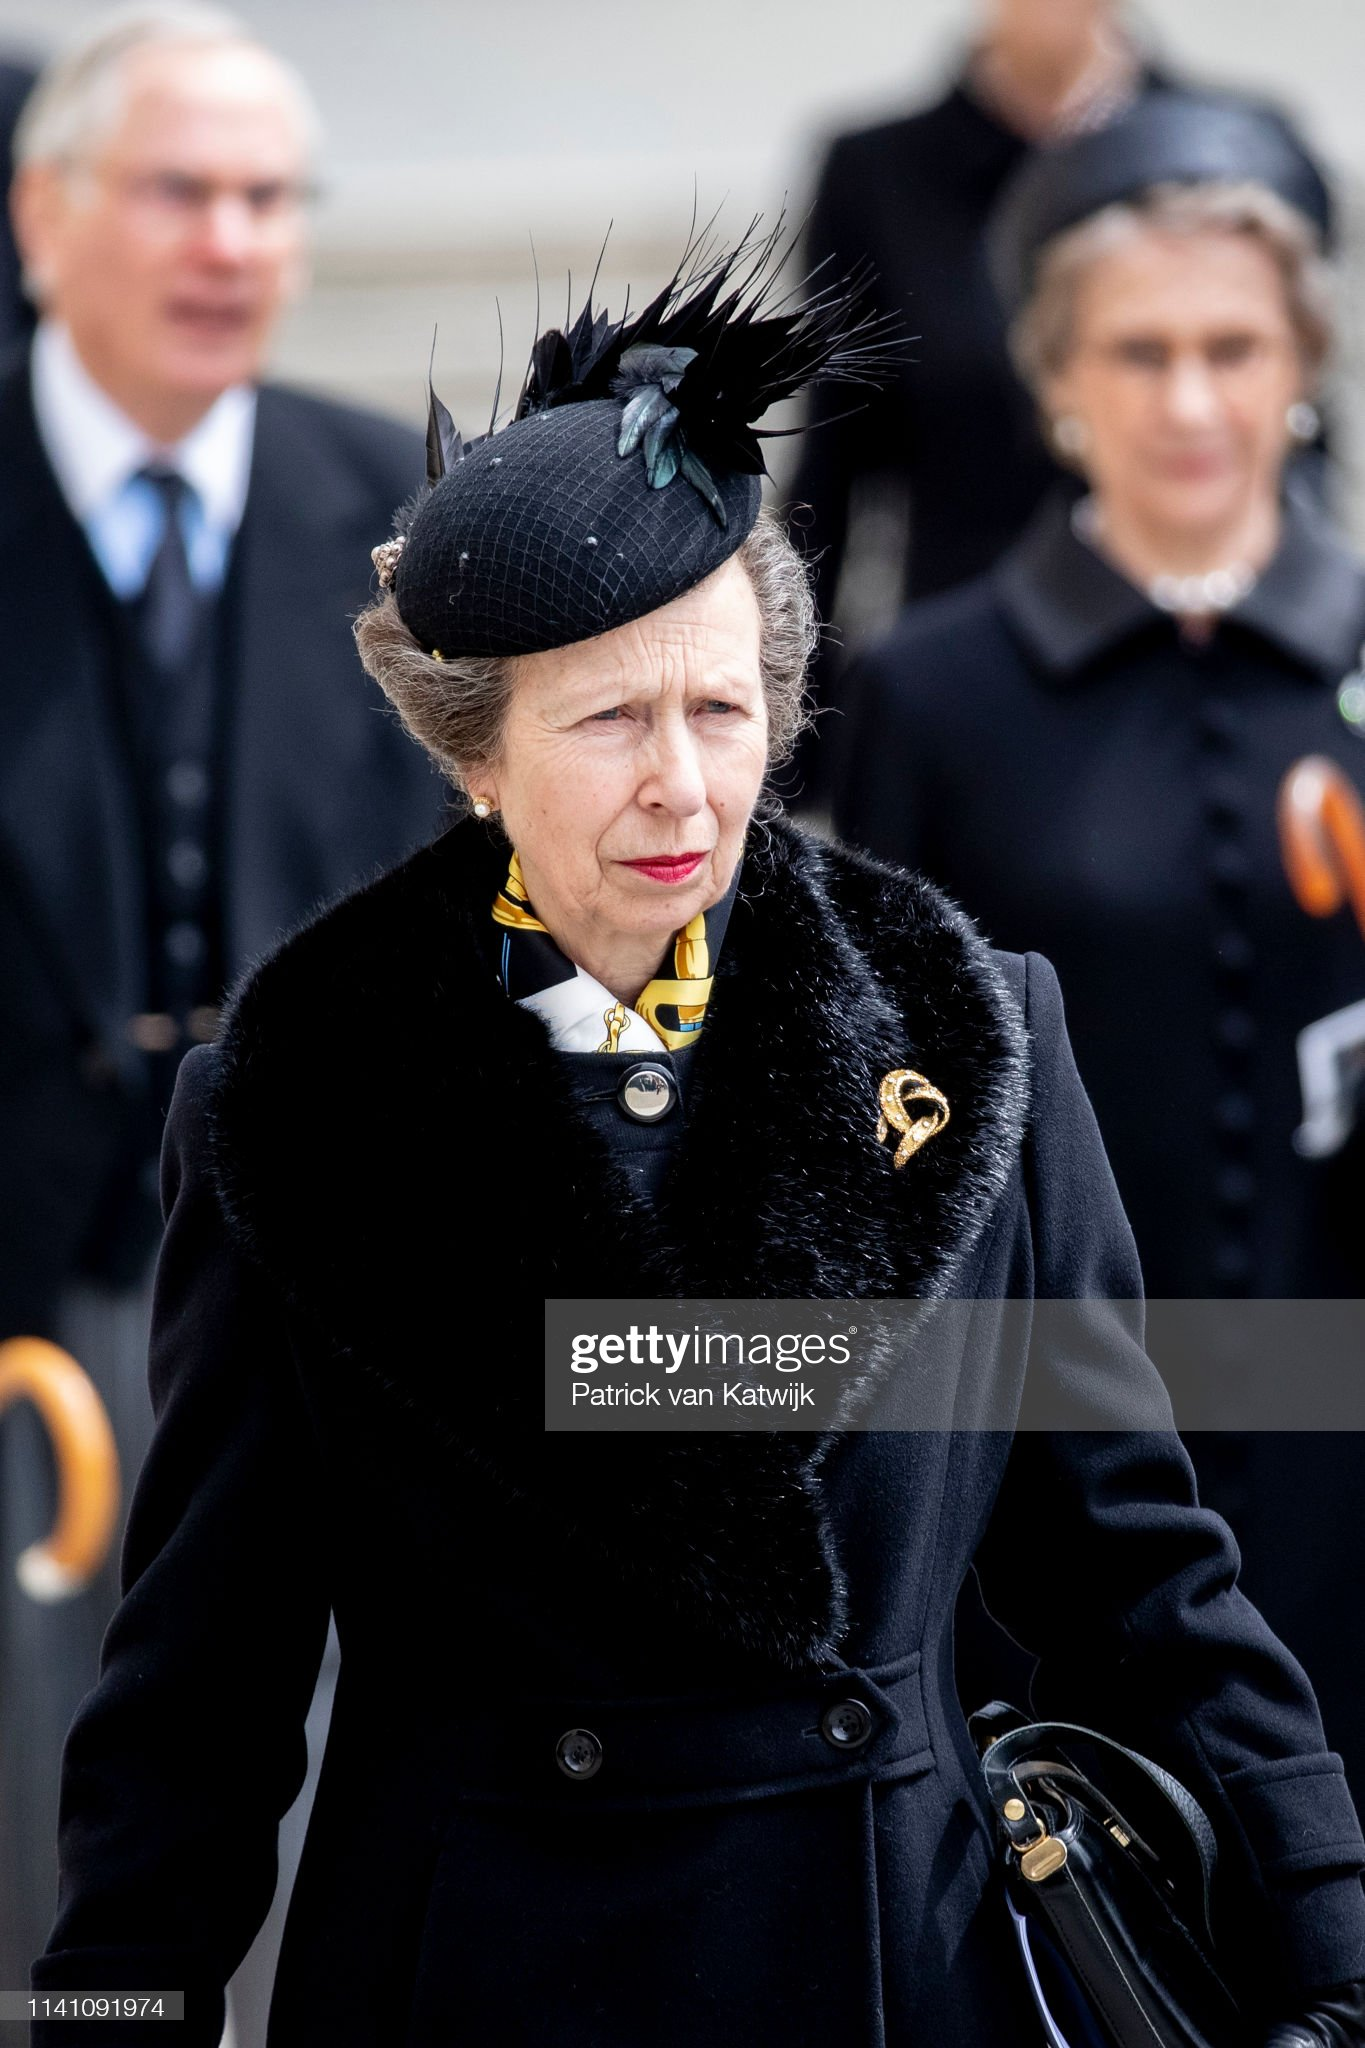 Похороны Великого Герцога Жана https://media.gettyimages.com/photos/princess-anne-of-the-united-kingdom-attends-the-funeral-of-grand-duke-picture-id1141091974?s=2048x2048